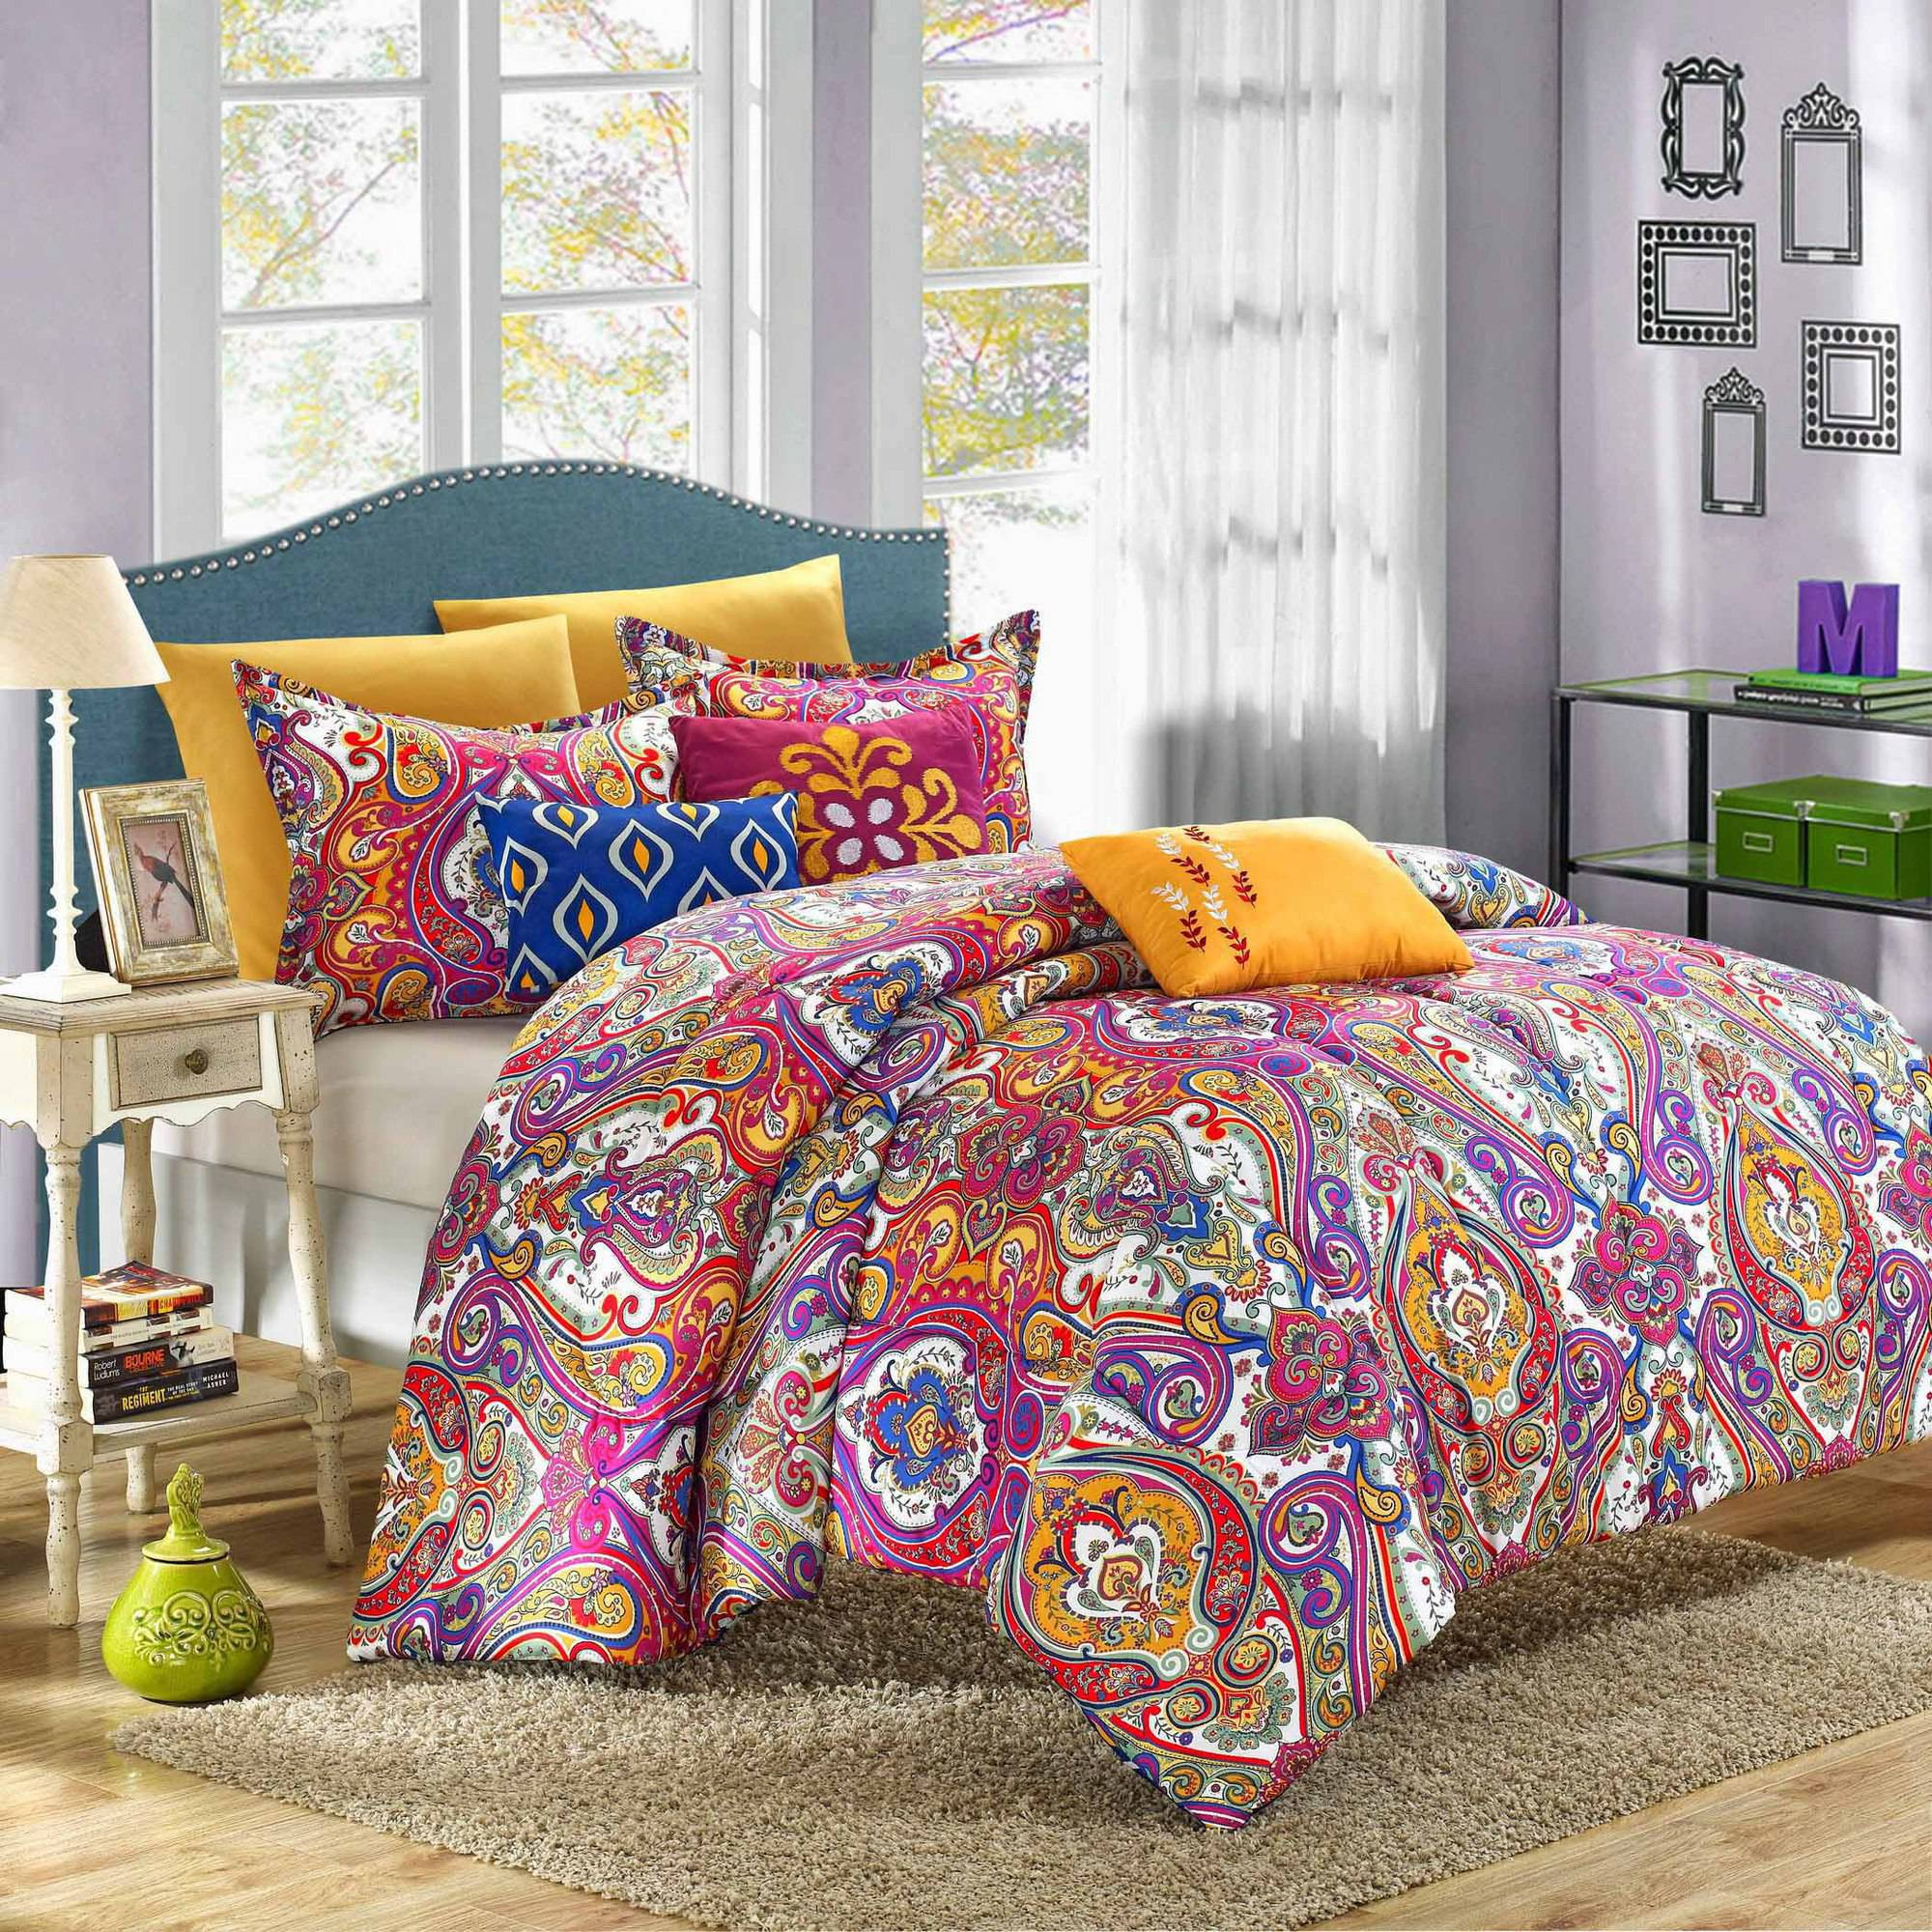 Chic Home Paisley Global Inspi 6-Piece Bombay Reversible Comforter Set